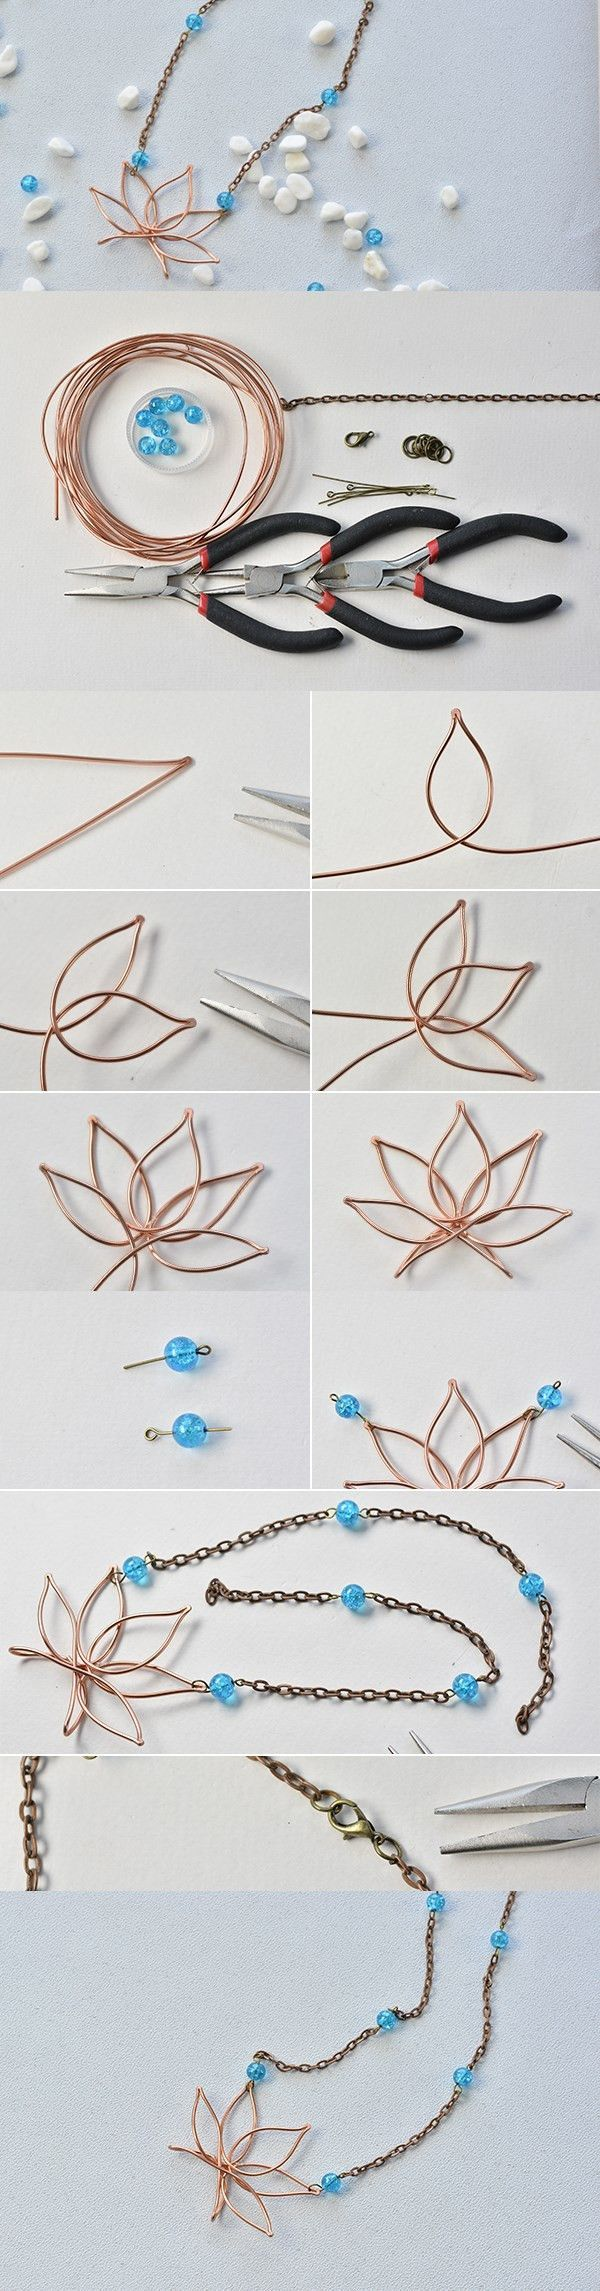 2970 best jewelry - METAL & WIRE images on Pinterest | Bangle ...